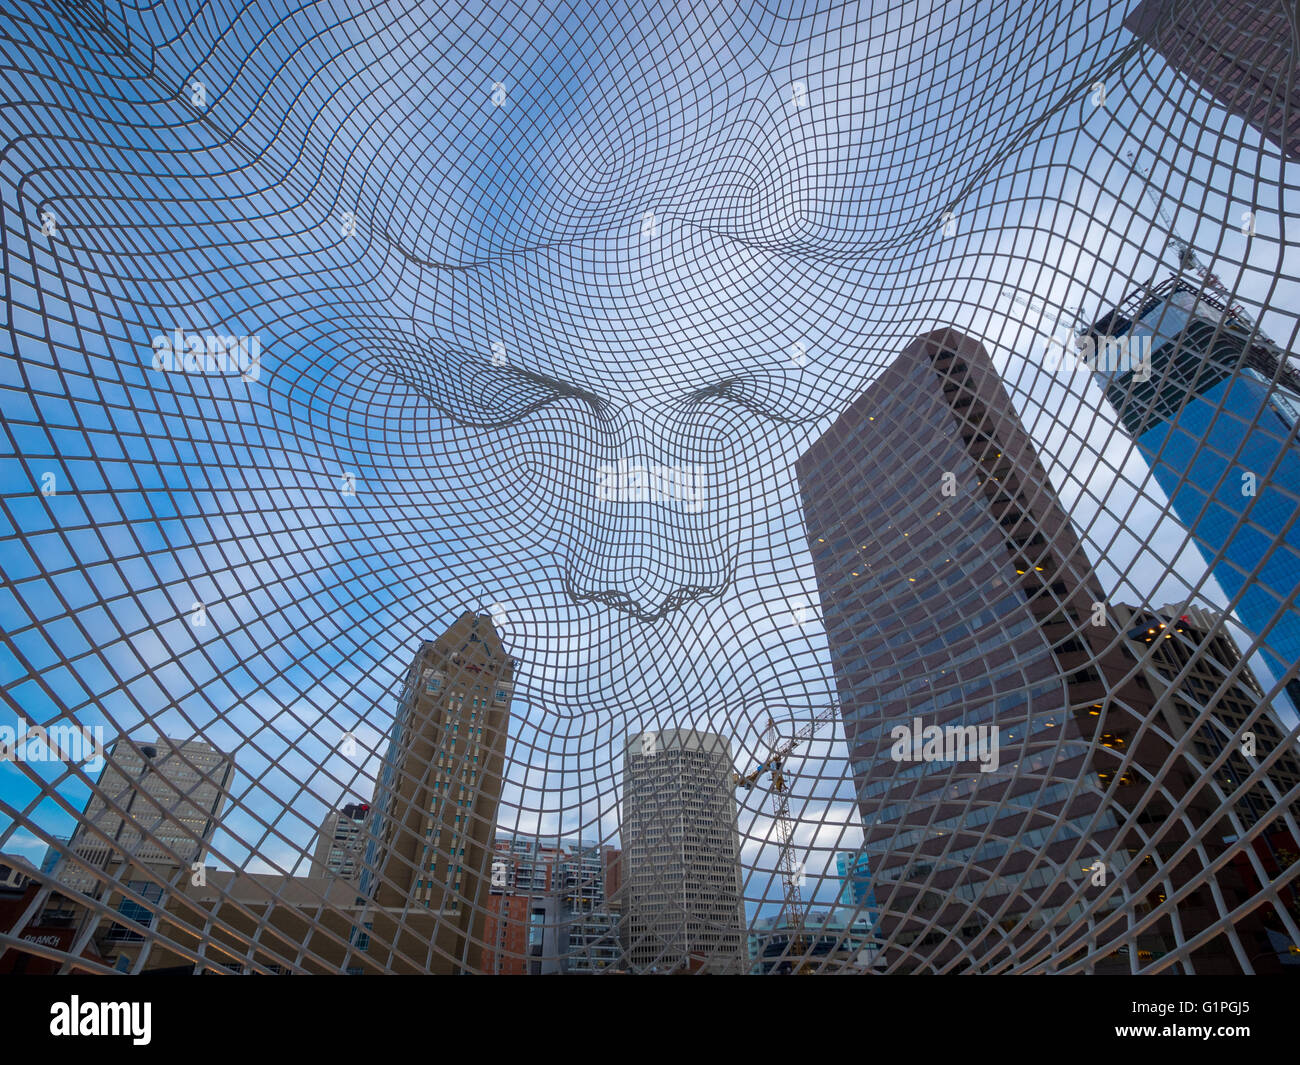 Downtown Calgary, Alberta, Canada, skyscrapers as seen from within Jaume Plensa's Wonderland sculpture. - Stock Image